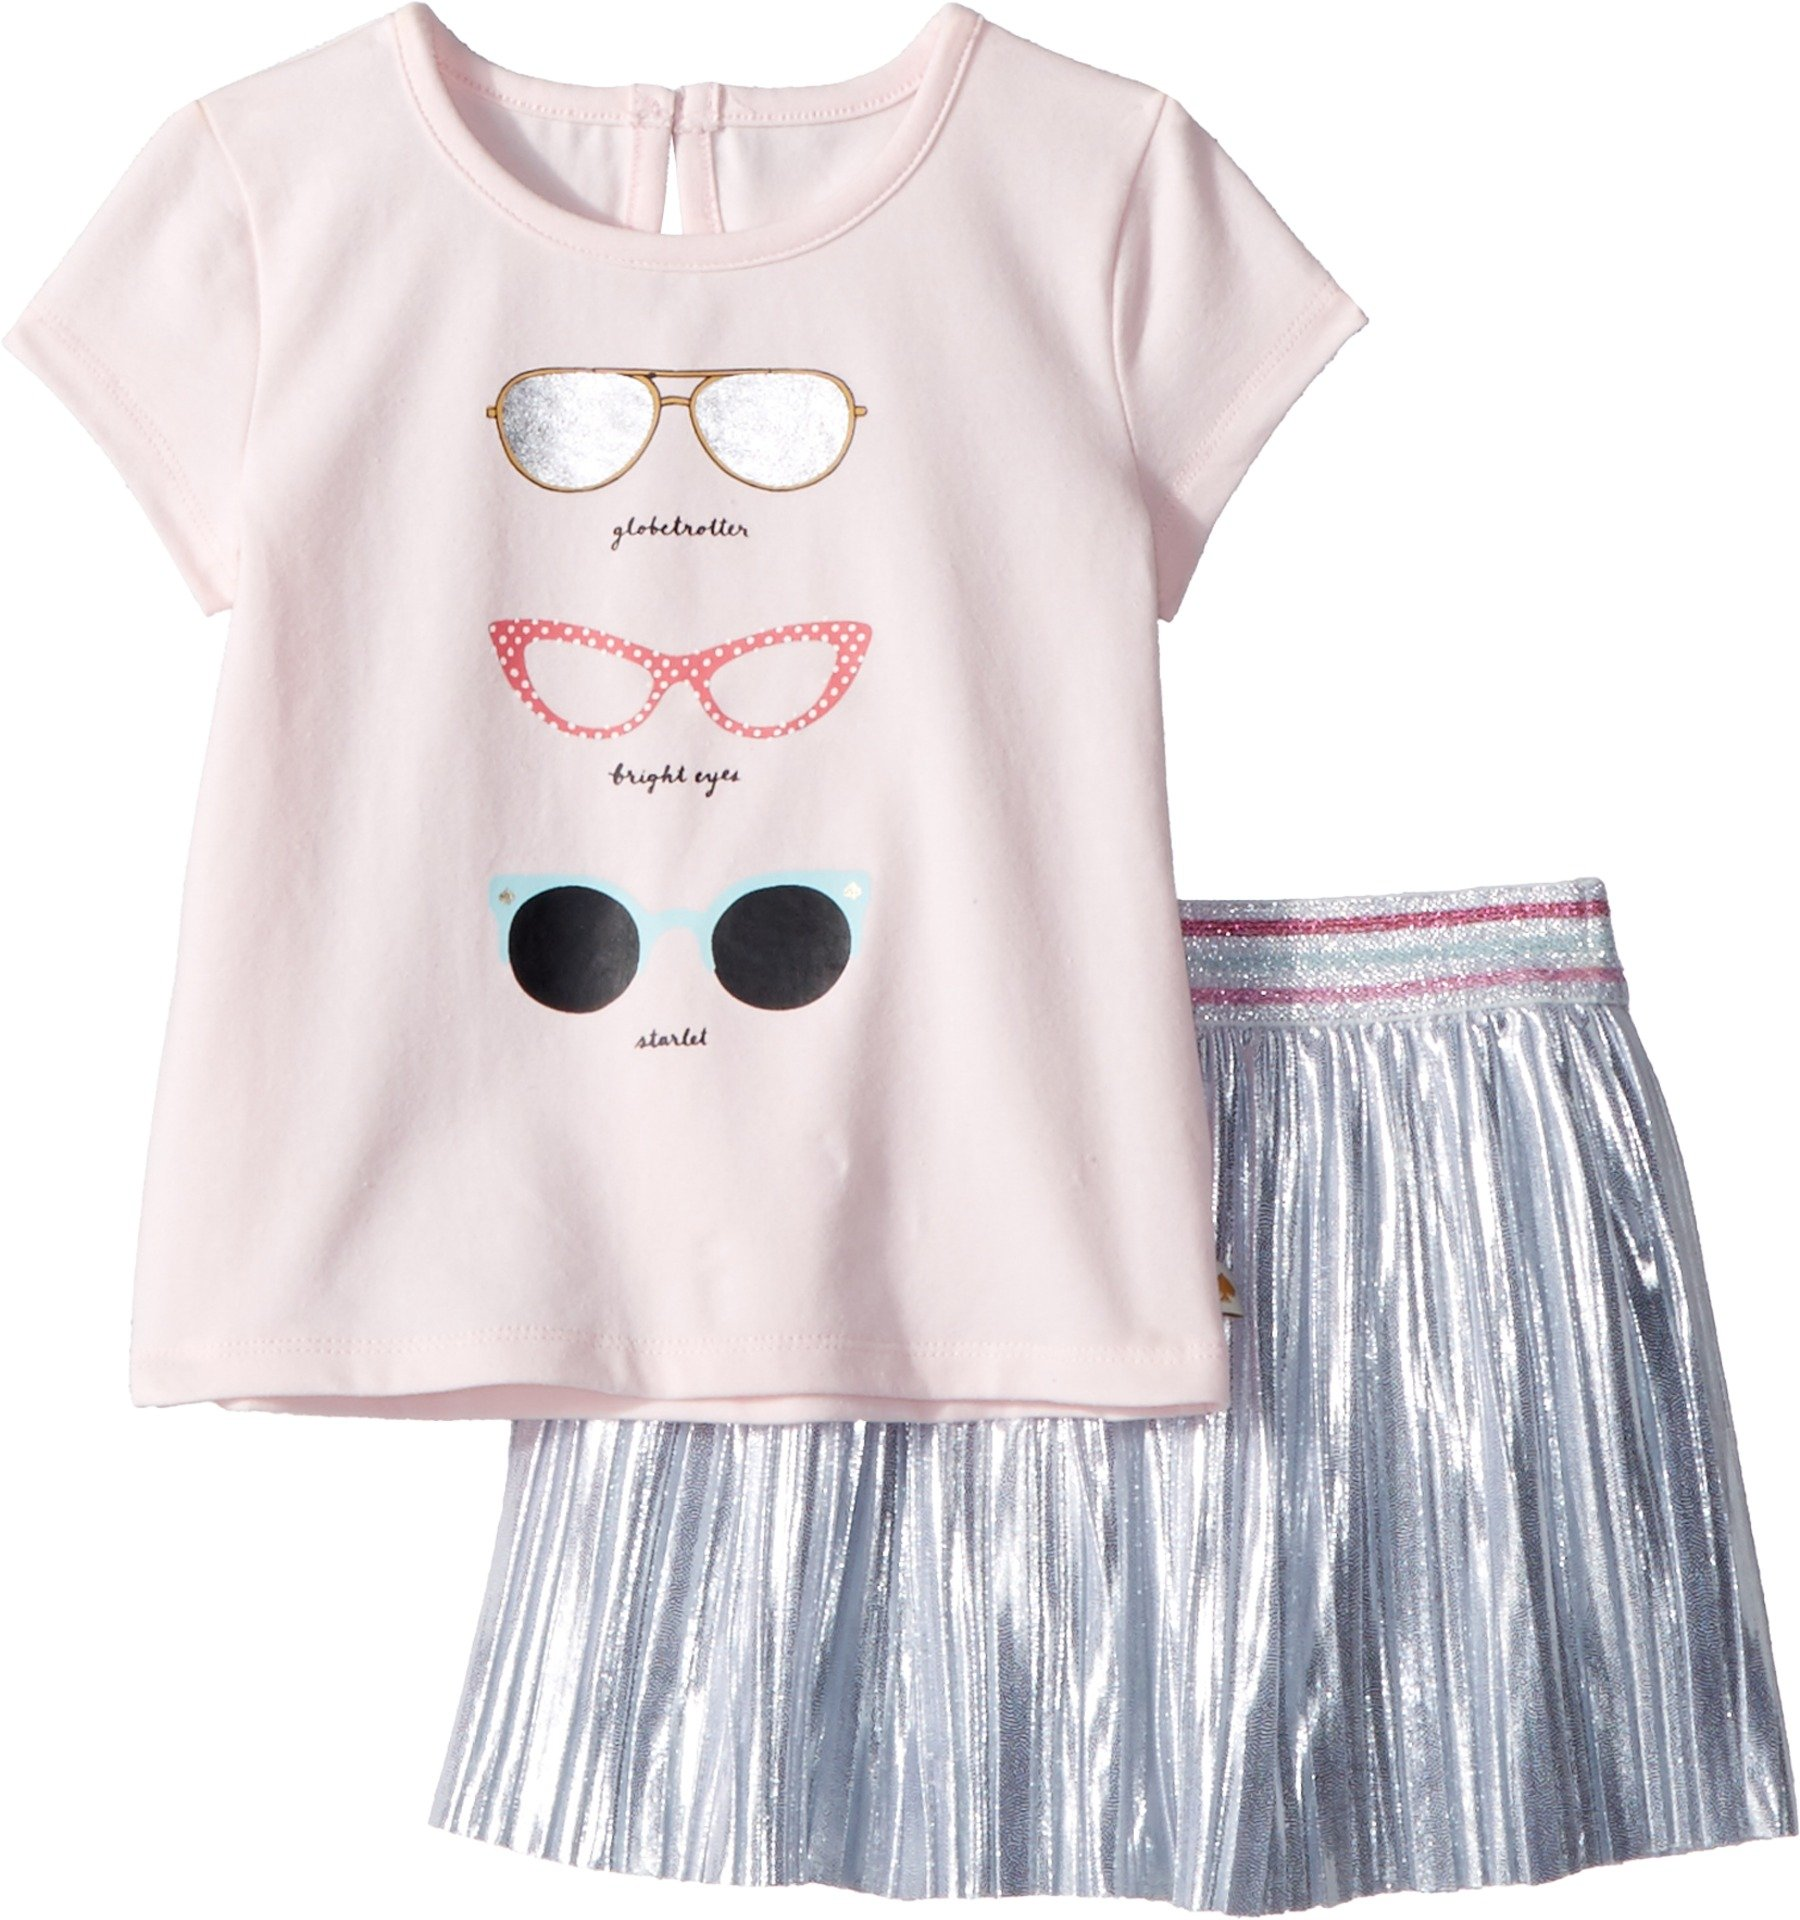 Kate Spade New York Kids Baby Girl's Sunglasses Skirt Set (Infant) Sonata Pink 24 Months by Kate Spade New York